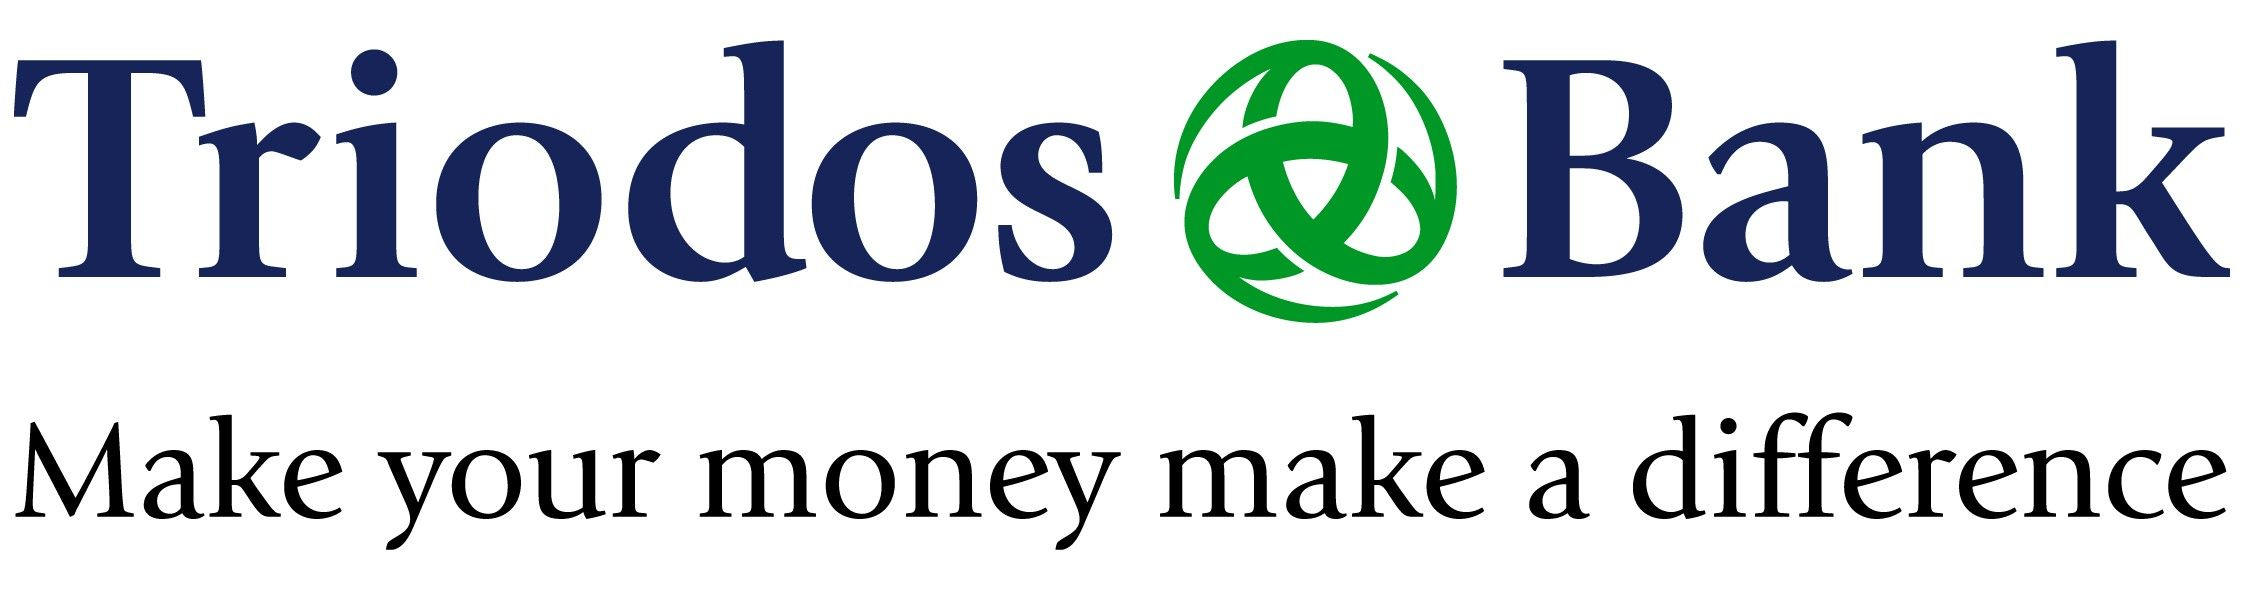 Triodos Bank Informs Their Clients At All Times Where Their Money Goes Http Www Triodos Com En About Triodos Bank Know Where Your Money Goes Transparency